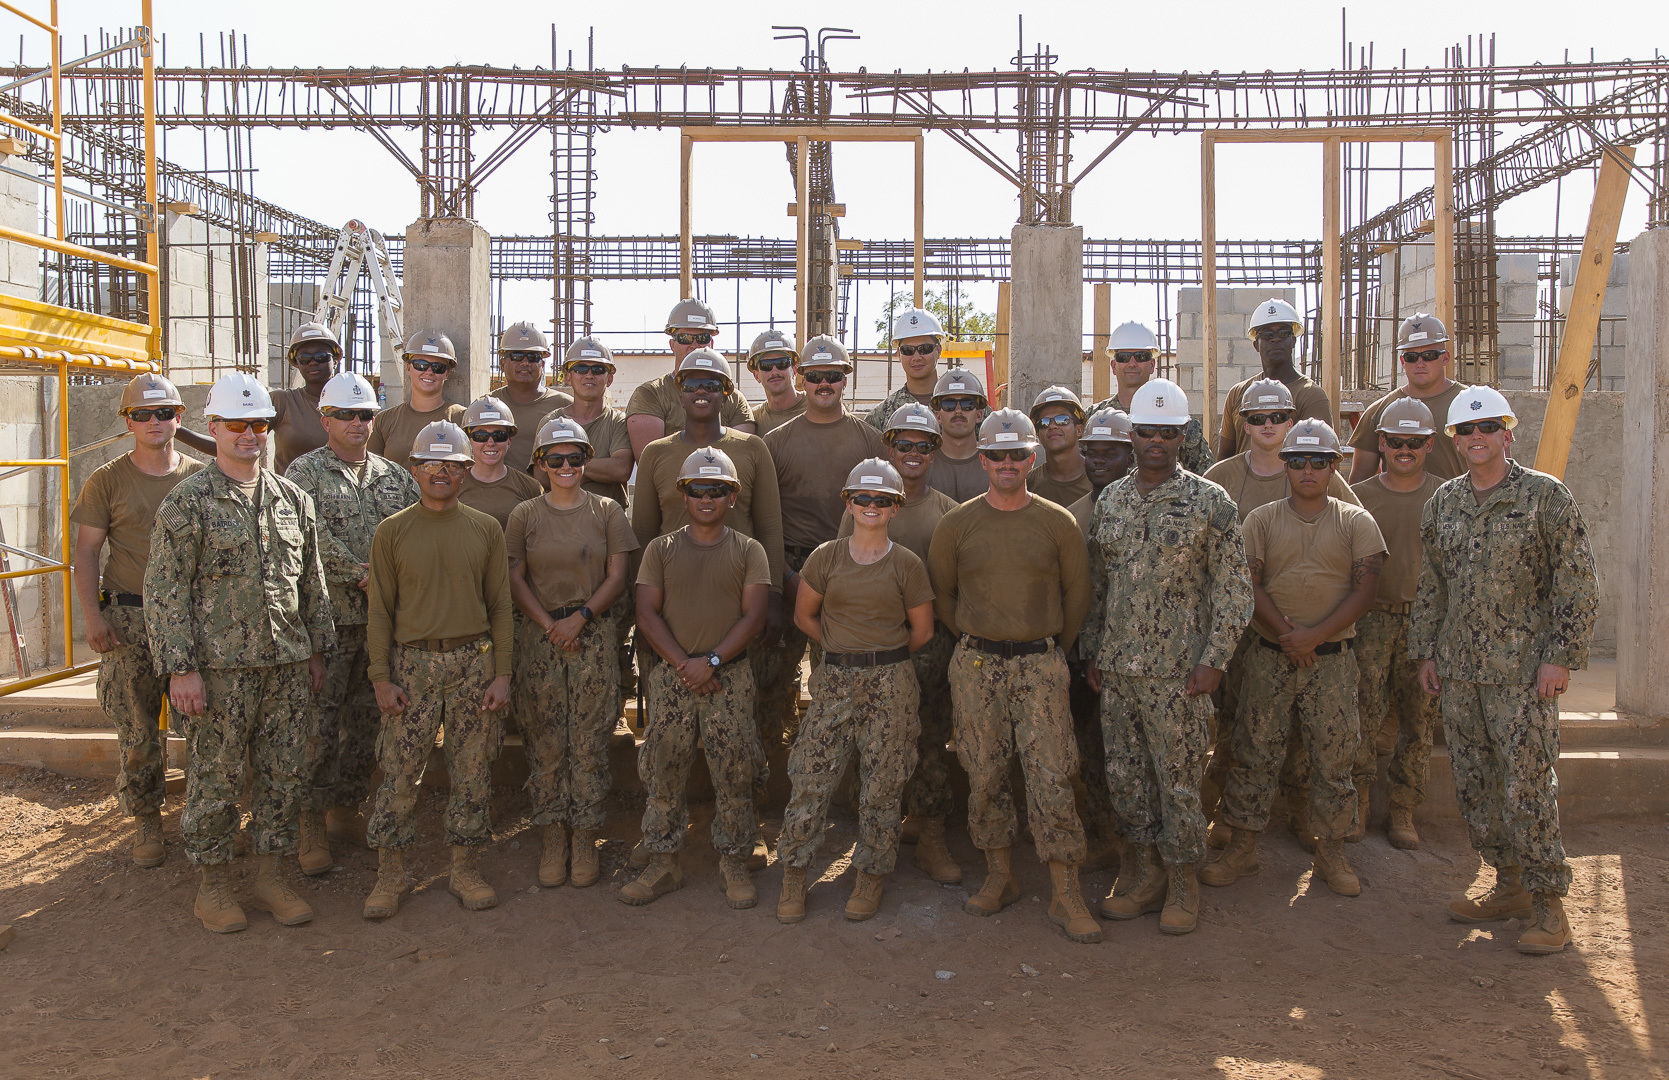 U.S. Navy Seabees with Naval Mobile Construction Battalion 1, Detachment Horn of Africa (NMCB 1, Det-HOA) stop for a photo with NMCB-1's Civil Engineer Corps Cmdr. Michael Meno and Command Master Chief Derrick Arrington at a project site in Ali Oune, Djibouti, Sept.19, 2018. NMCB-1, Det-HOA is building a medical facility in Ali Oune in support of the Ministry of Health for Djibouti. (U.S. Air National Guard photo by Master Sgt. Andrew Sinclair)